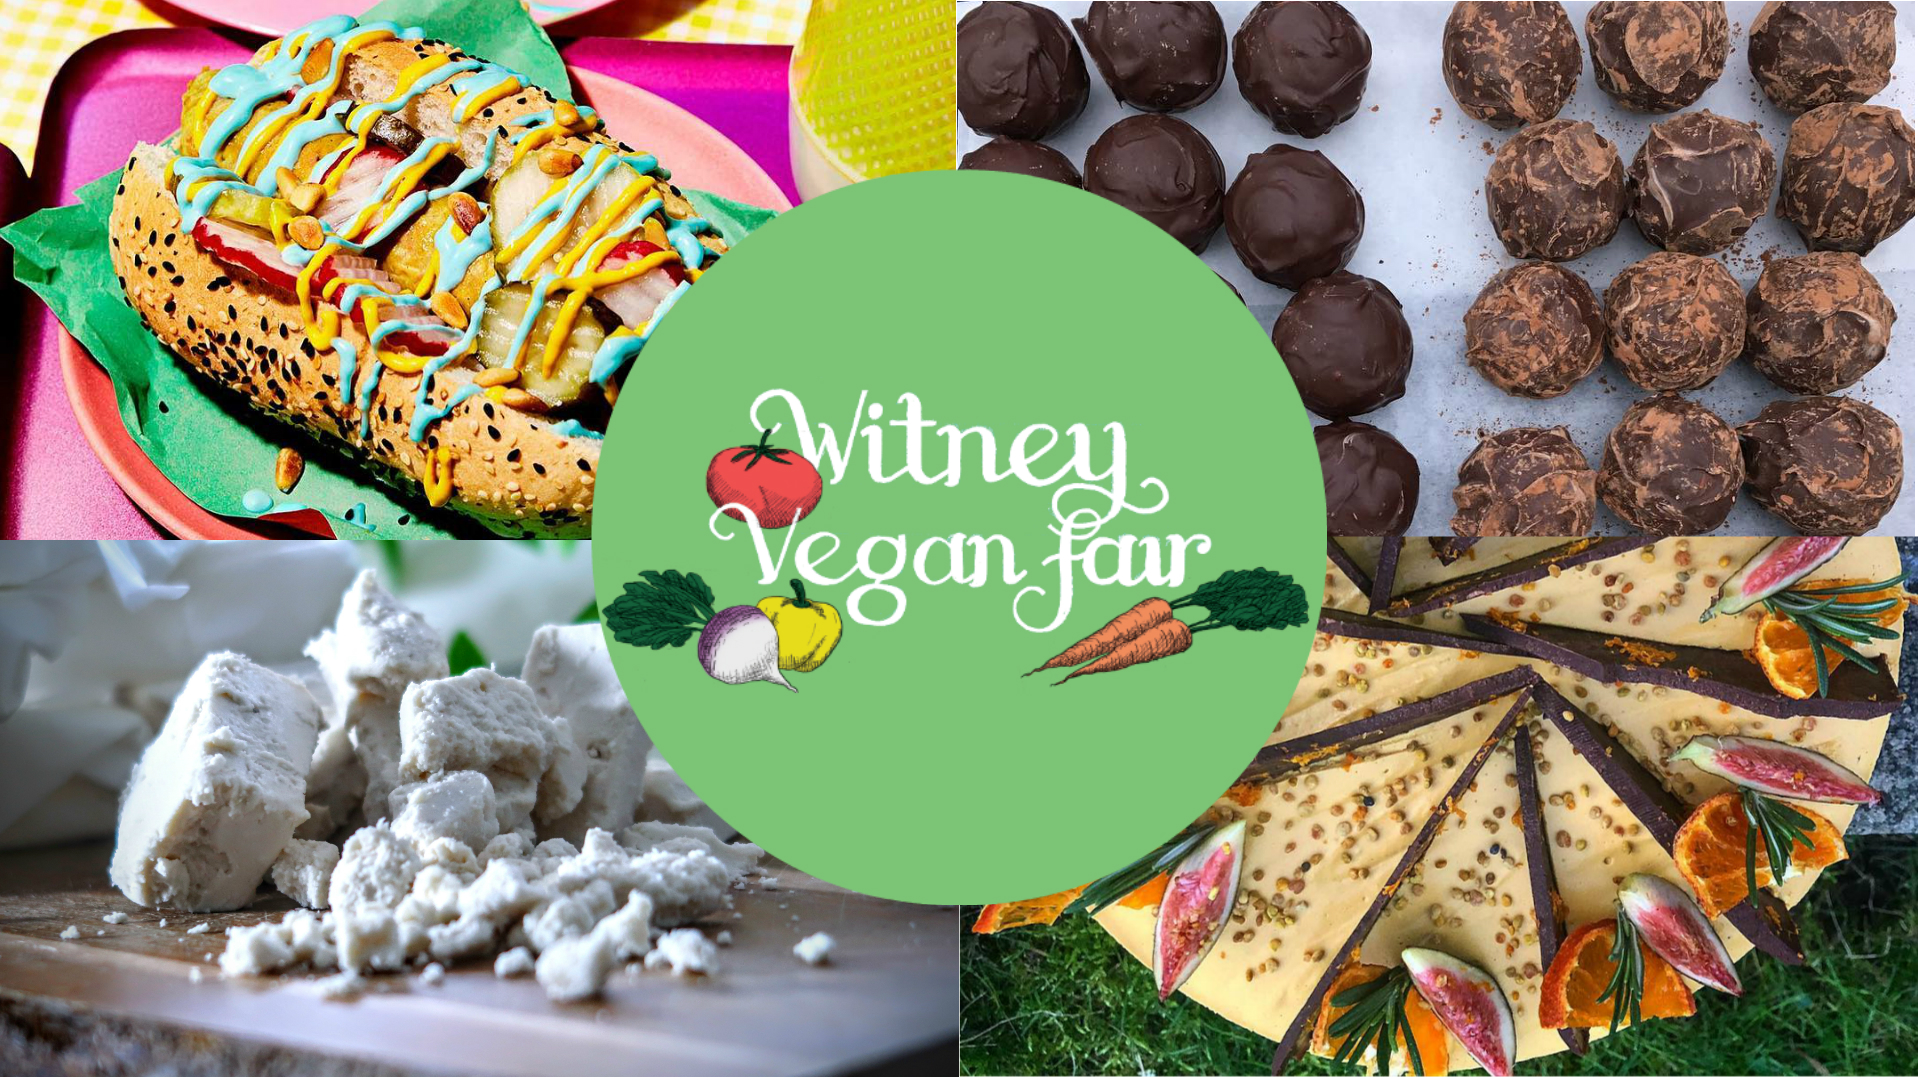 Witney Vegan Fair New Image.jpg